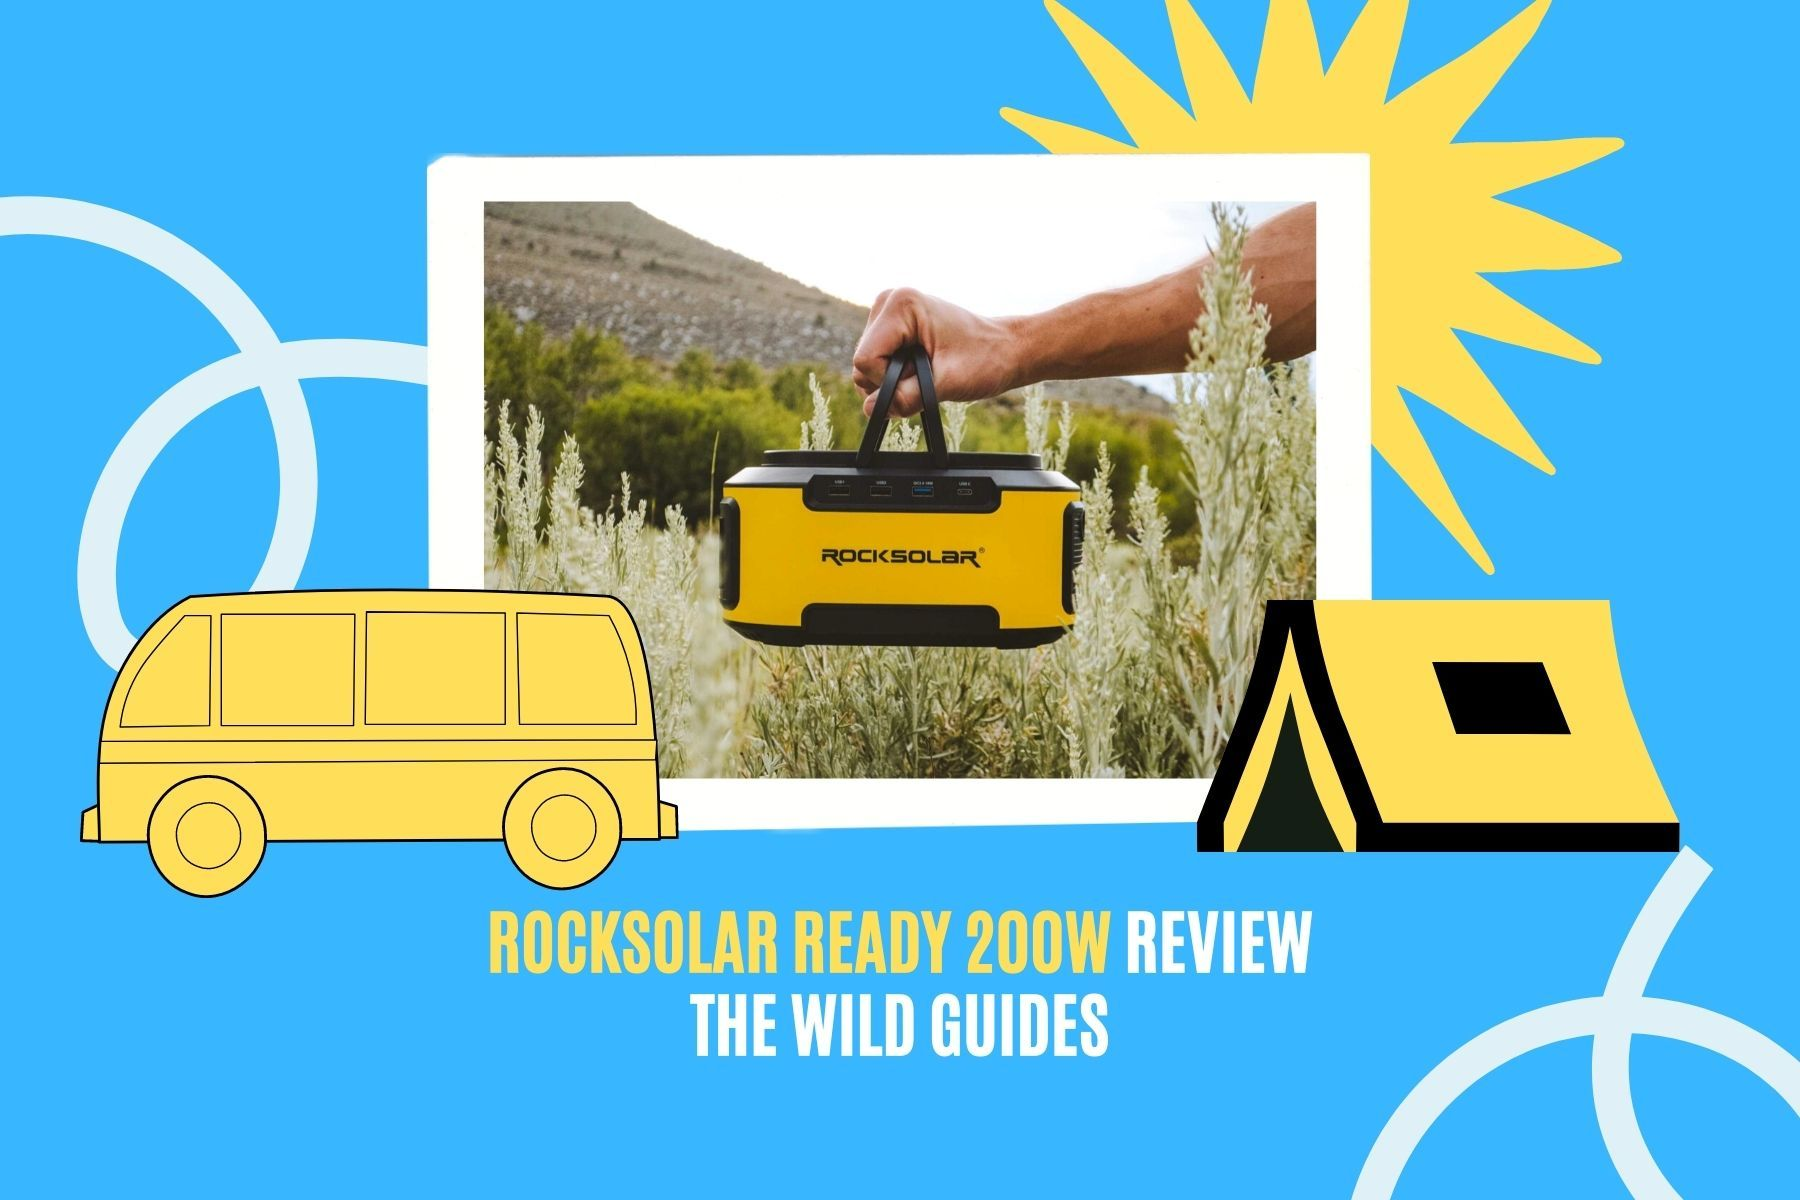 Rocksolar Ready 200W Review: A Lightweight and Reliable Power Station